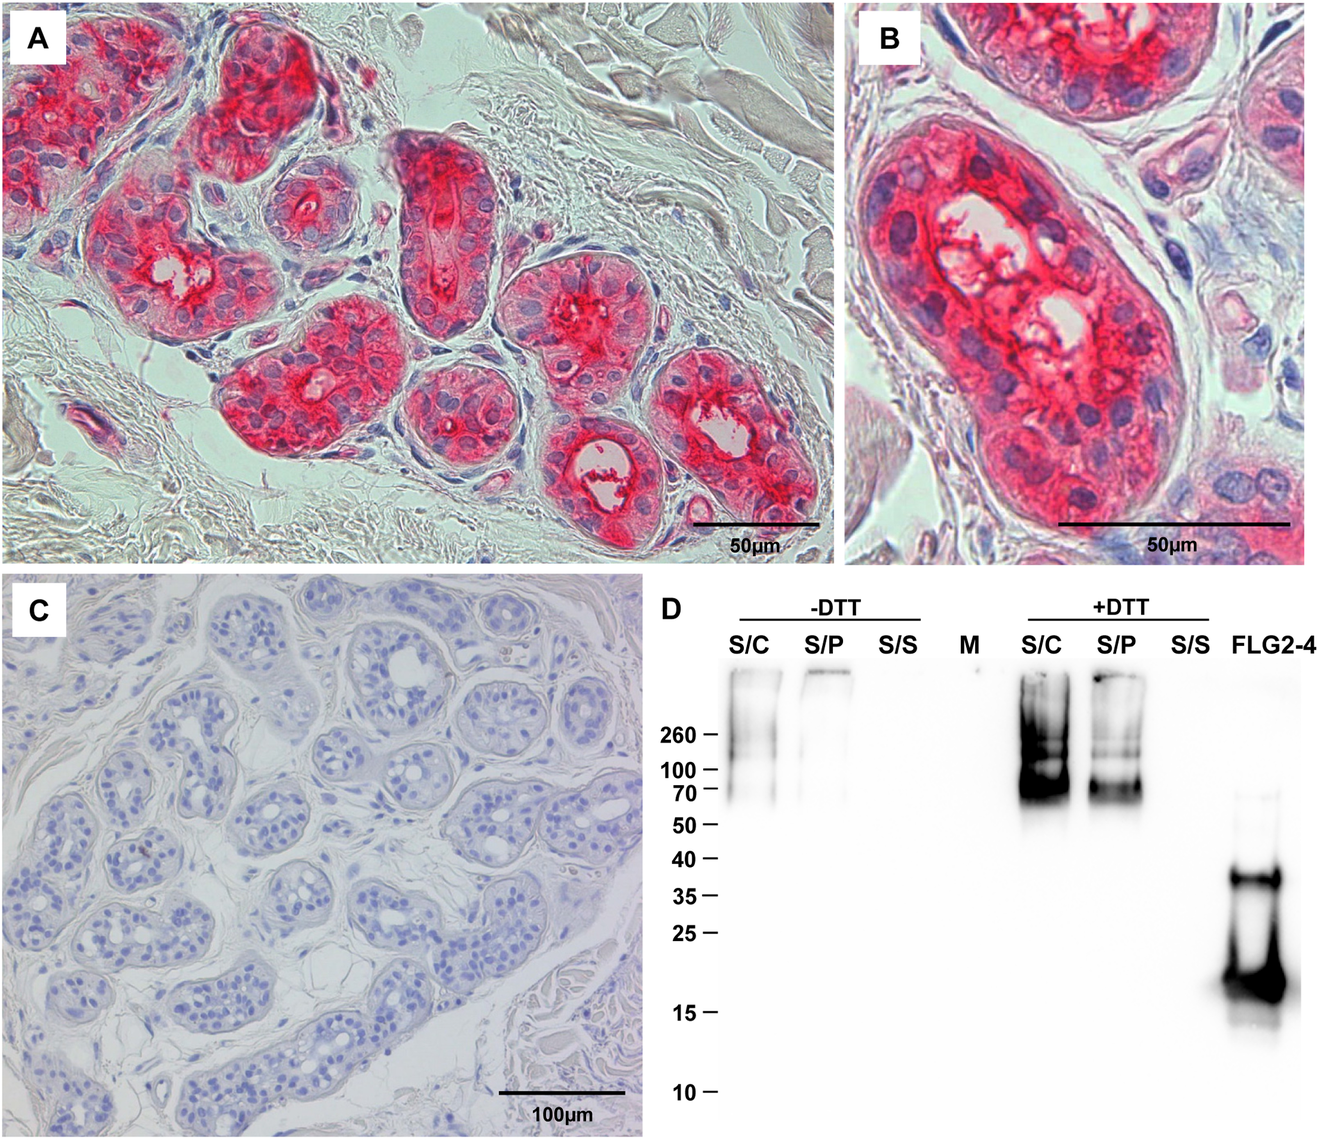 FLG2 is detected in eccrine sweat glands and sweat.